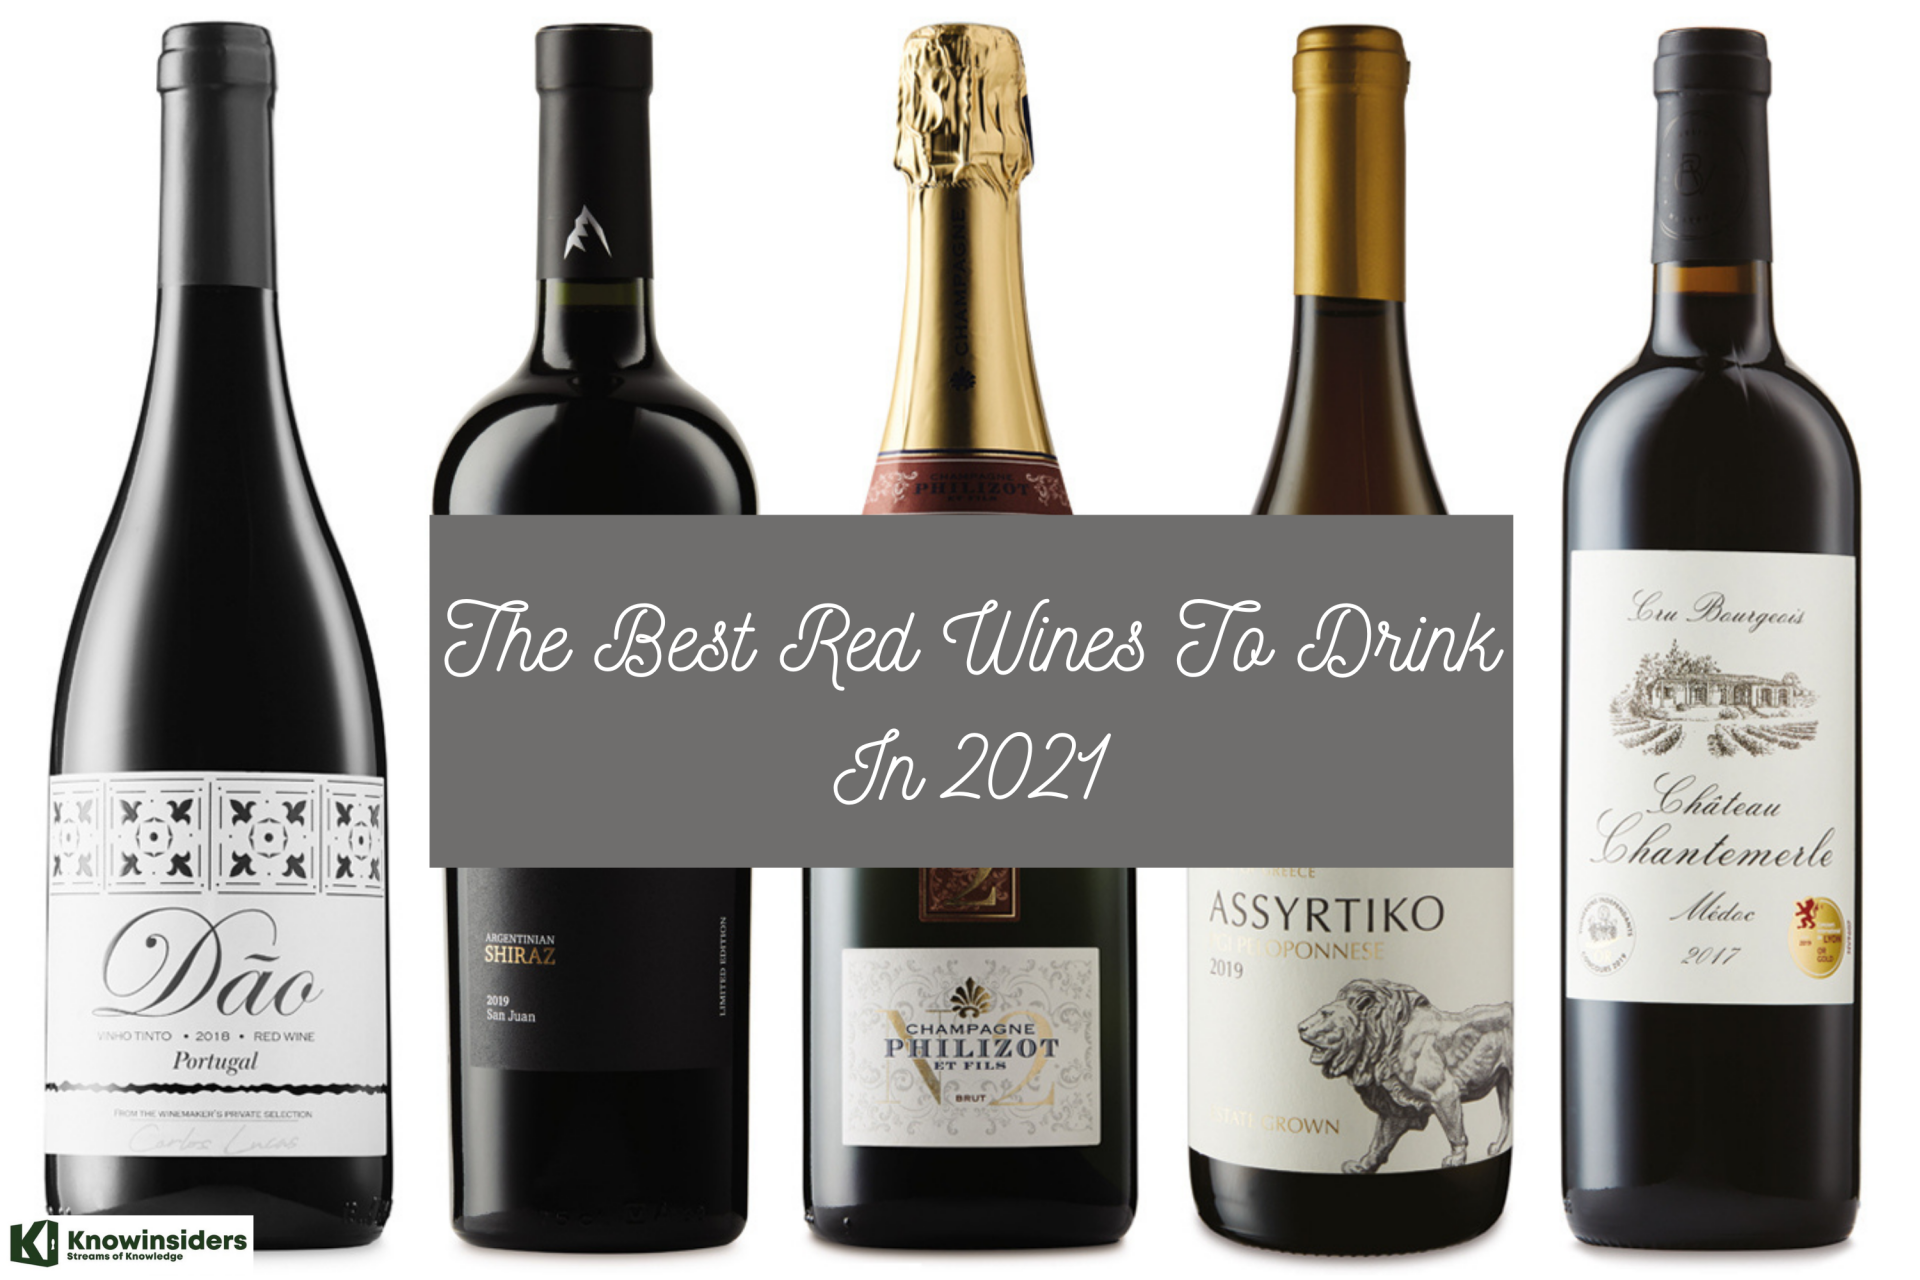 The Best Red Wines To Drink In 2021/2022